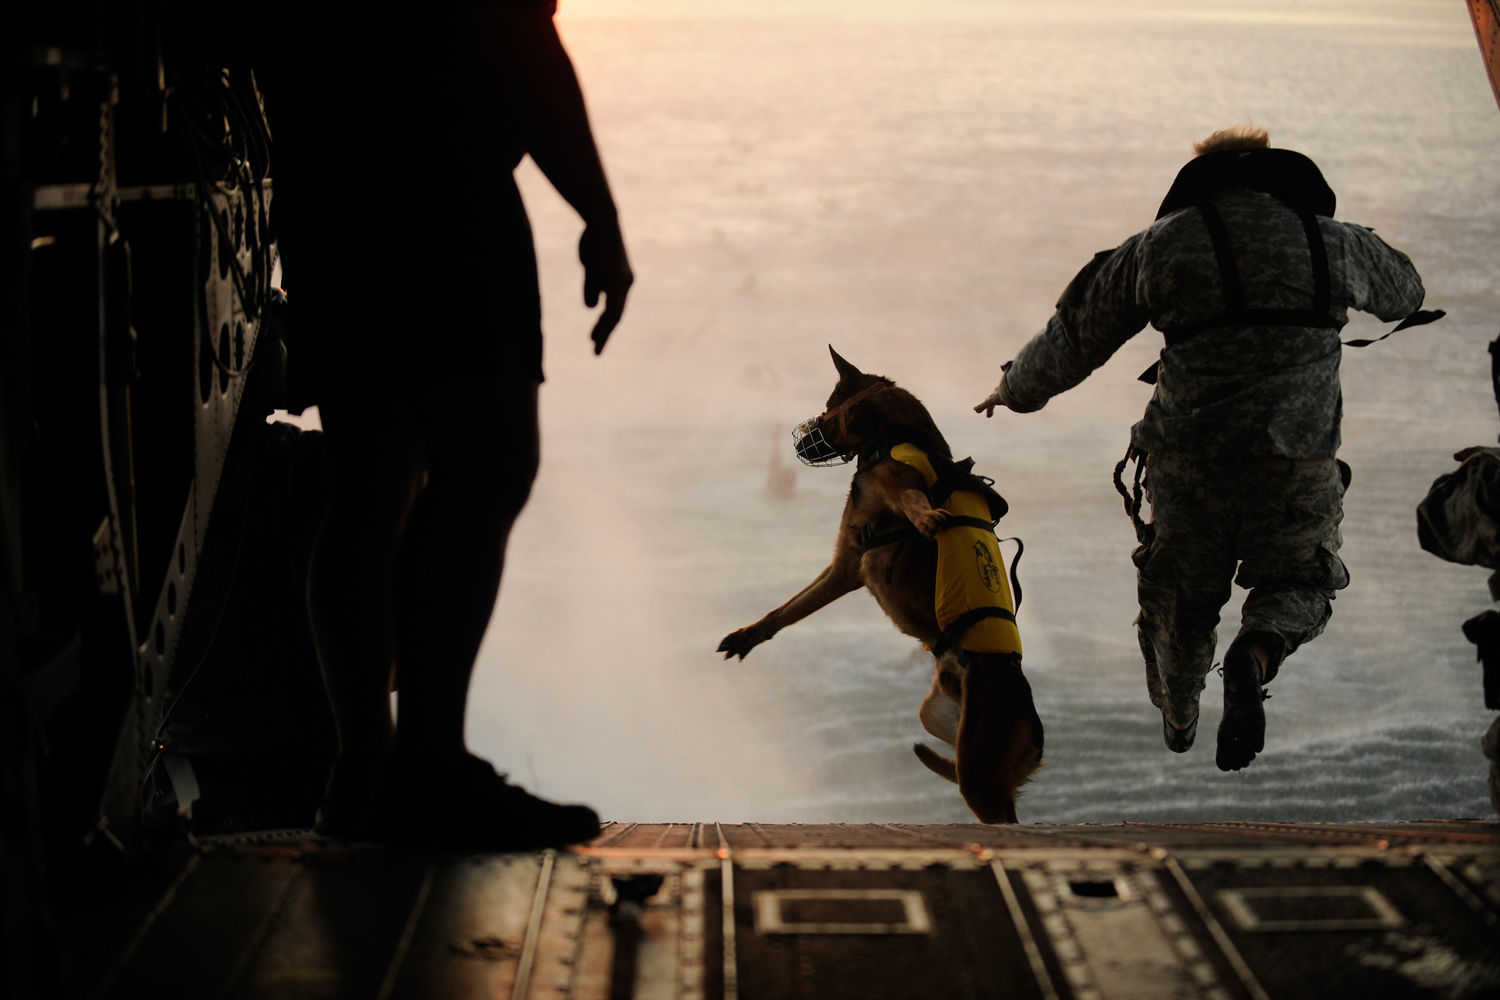 March 1, 2011. A U.S. Army soldier with the 10th Special Forces Group and his military working dog jump off the ramp of a CH-47 Chinook helicopter during water training over the Gulf of Mexico in this U.S. military handout image.